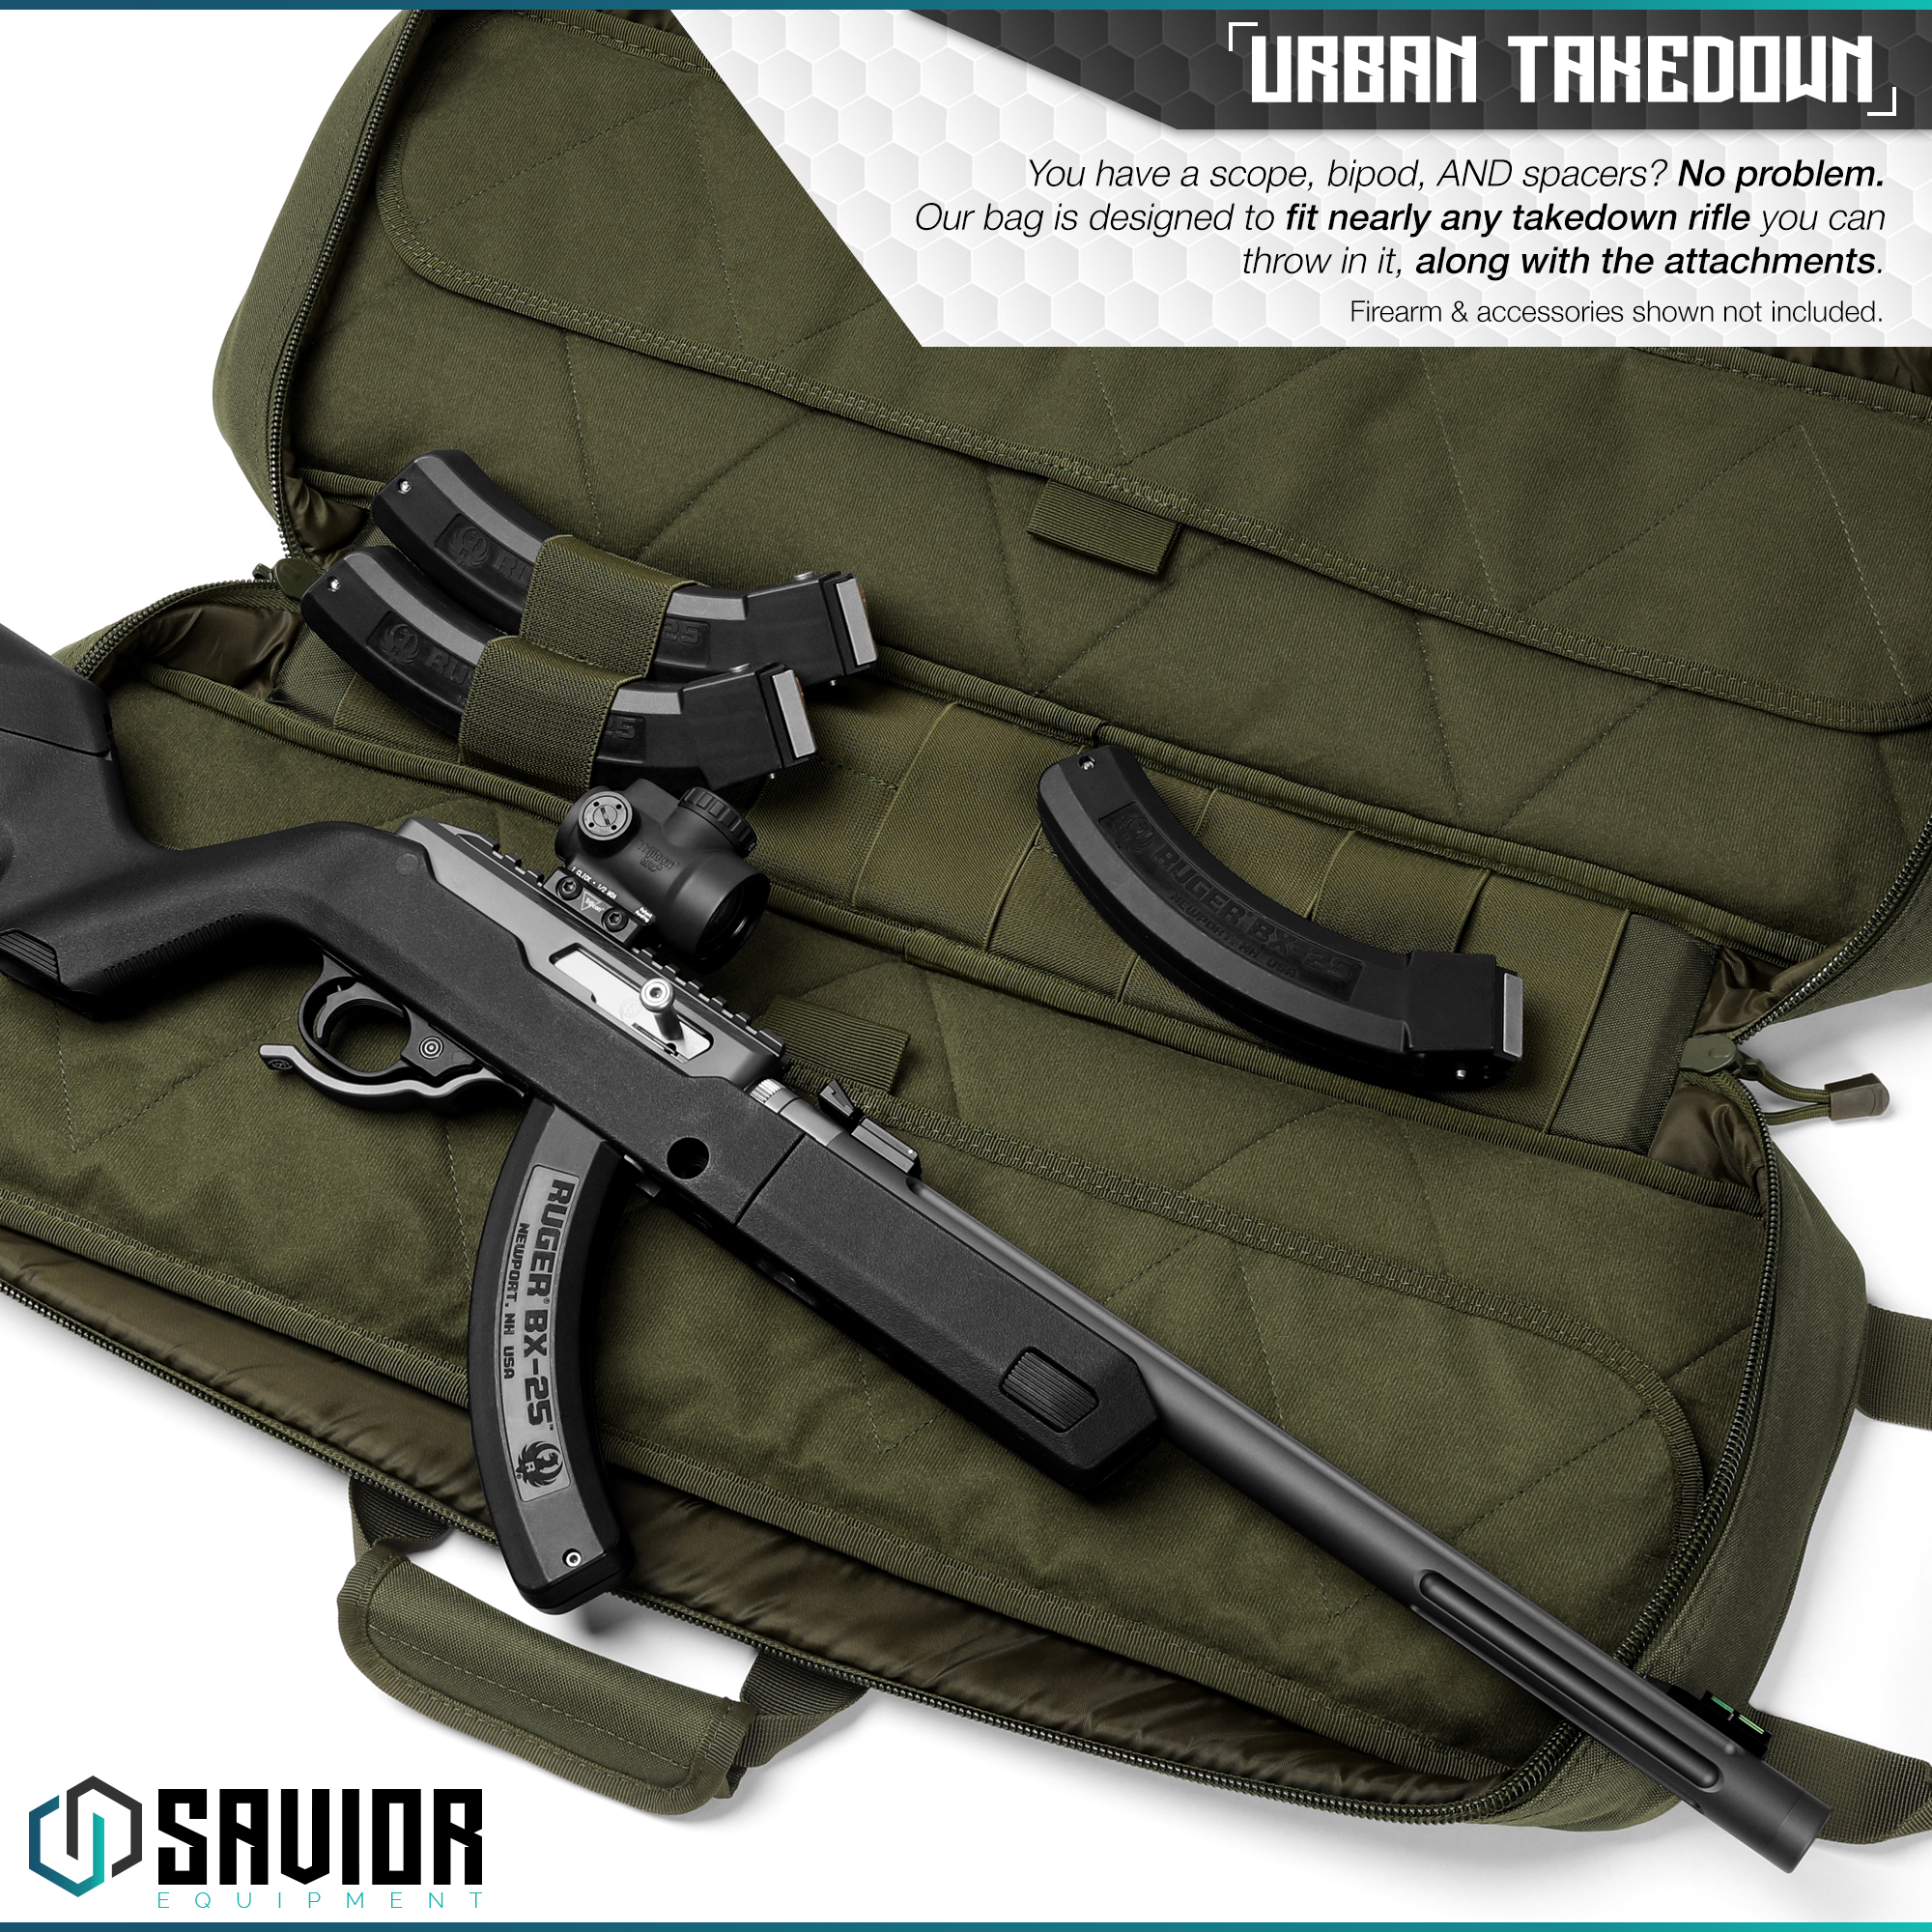 Savior-Tactical-Urban-Takedown-Bag-Carbine-Rifle-Padded-Shotgun-Firearm-Backpack thumbnail 15